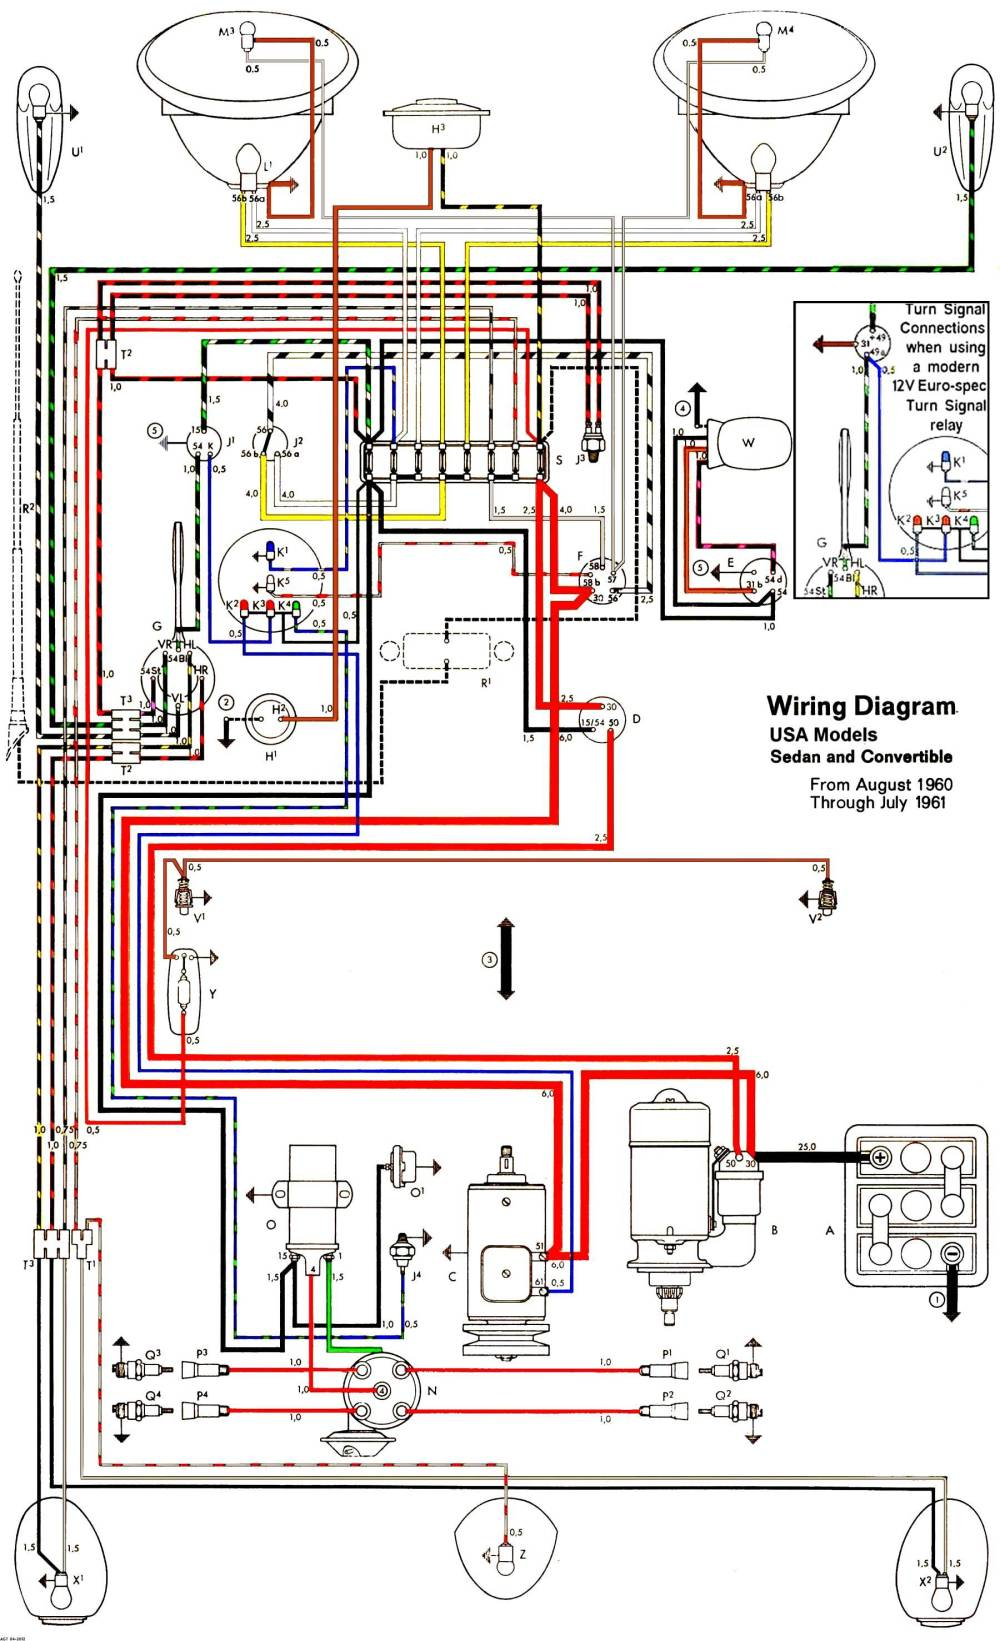 medium resolution of vw generator wiring diagram electrical wiring diagram 72 vw beetle generator wiring diagram vw bug generator wiring